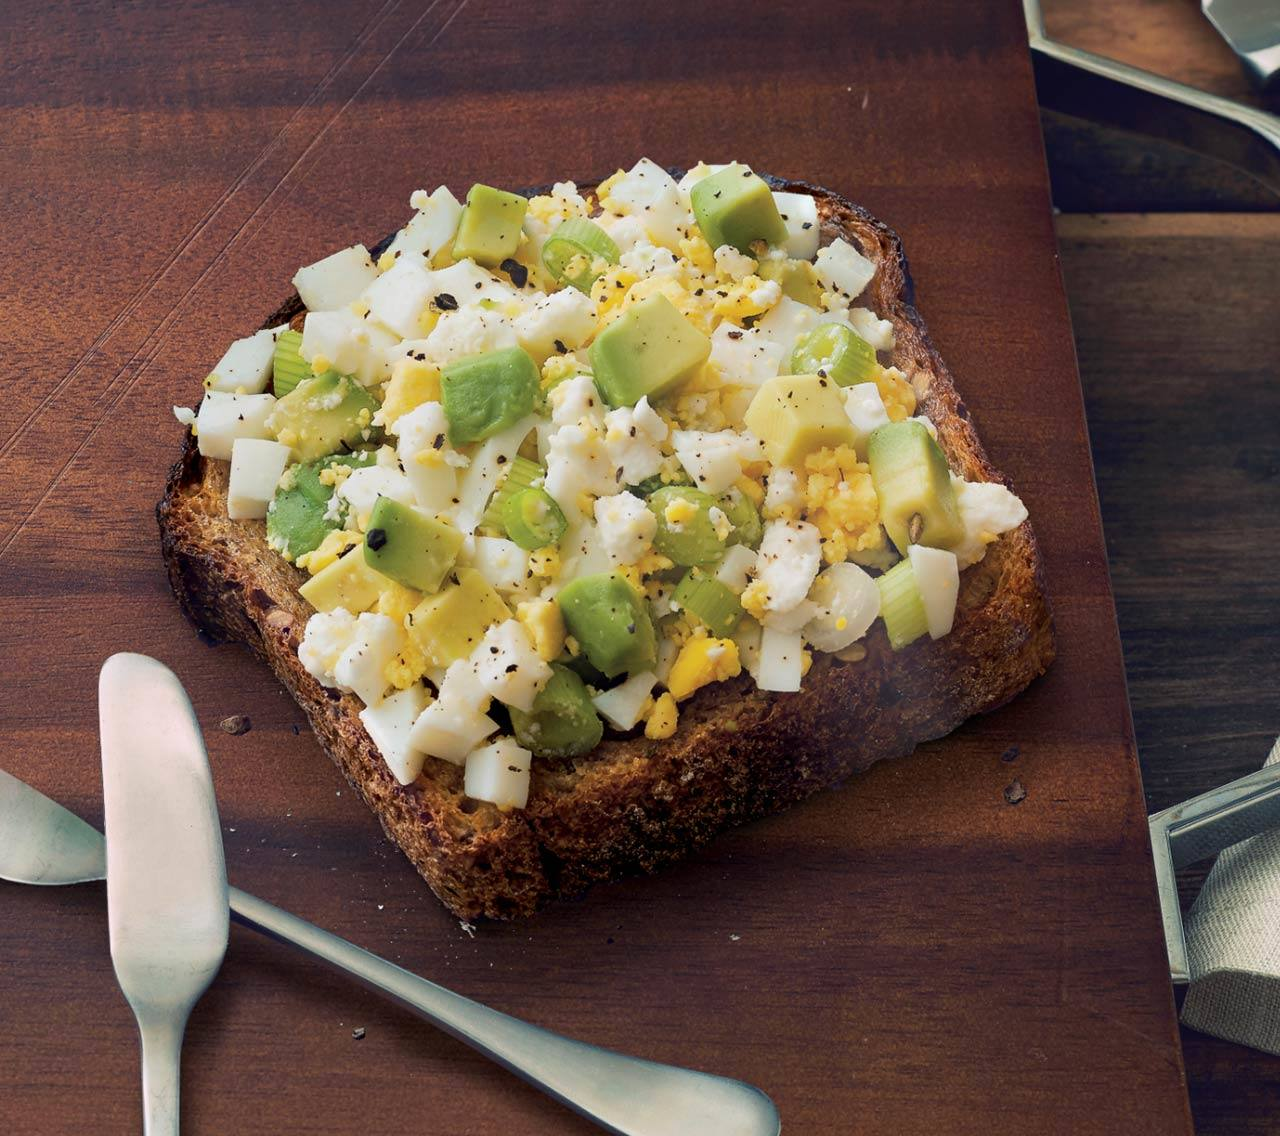 Avocado Toast with Egg and Feta Cheese